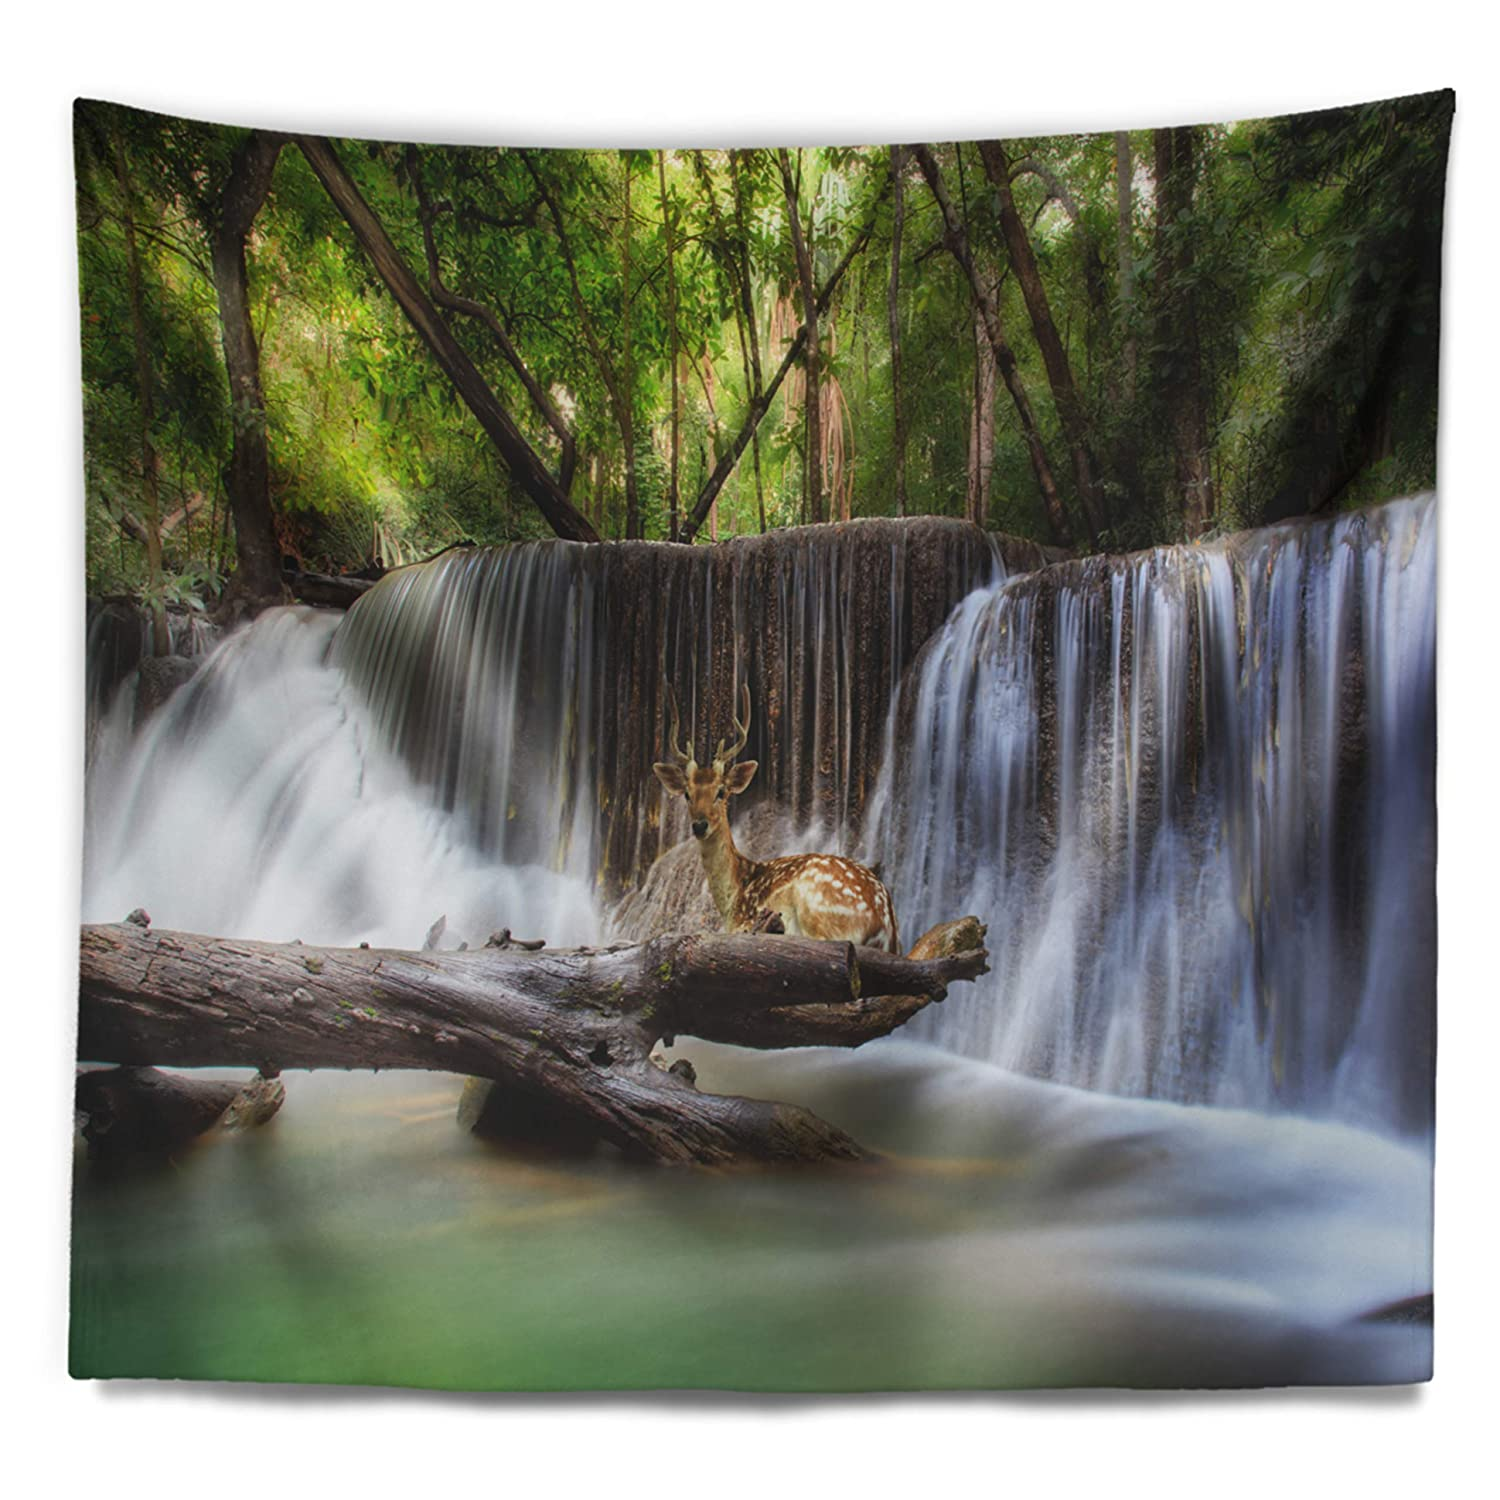 x 32 in 39 in Designart TAP7123-39-32  Huai Mae Kamin Waterfall Photo Abstract Blanket D/écor Art for Home and Office Wall Tapestry Medium in